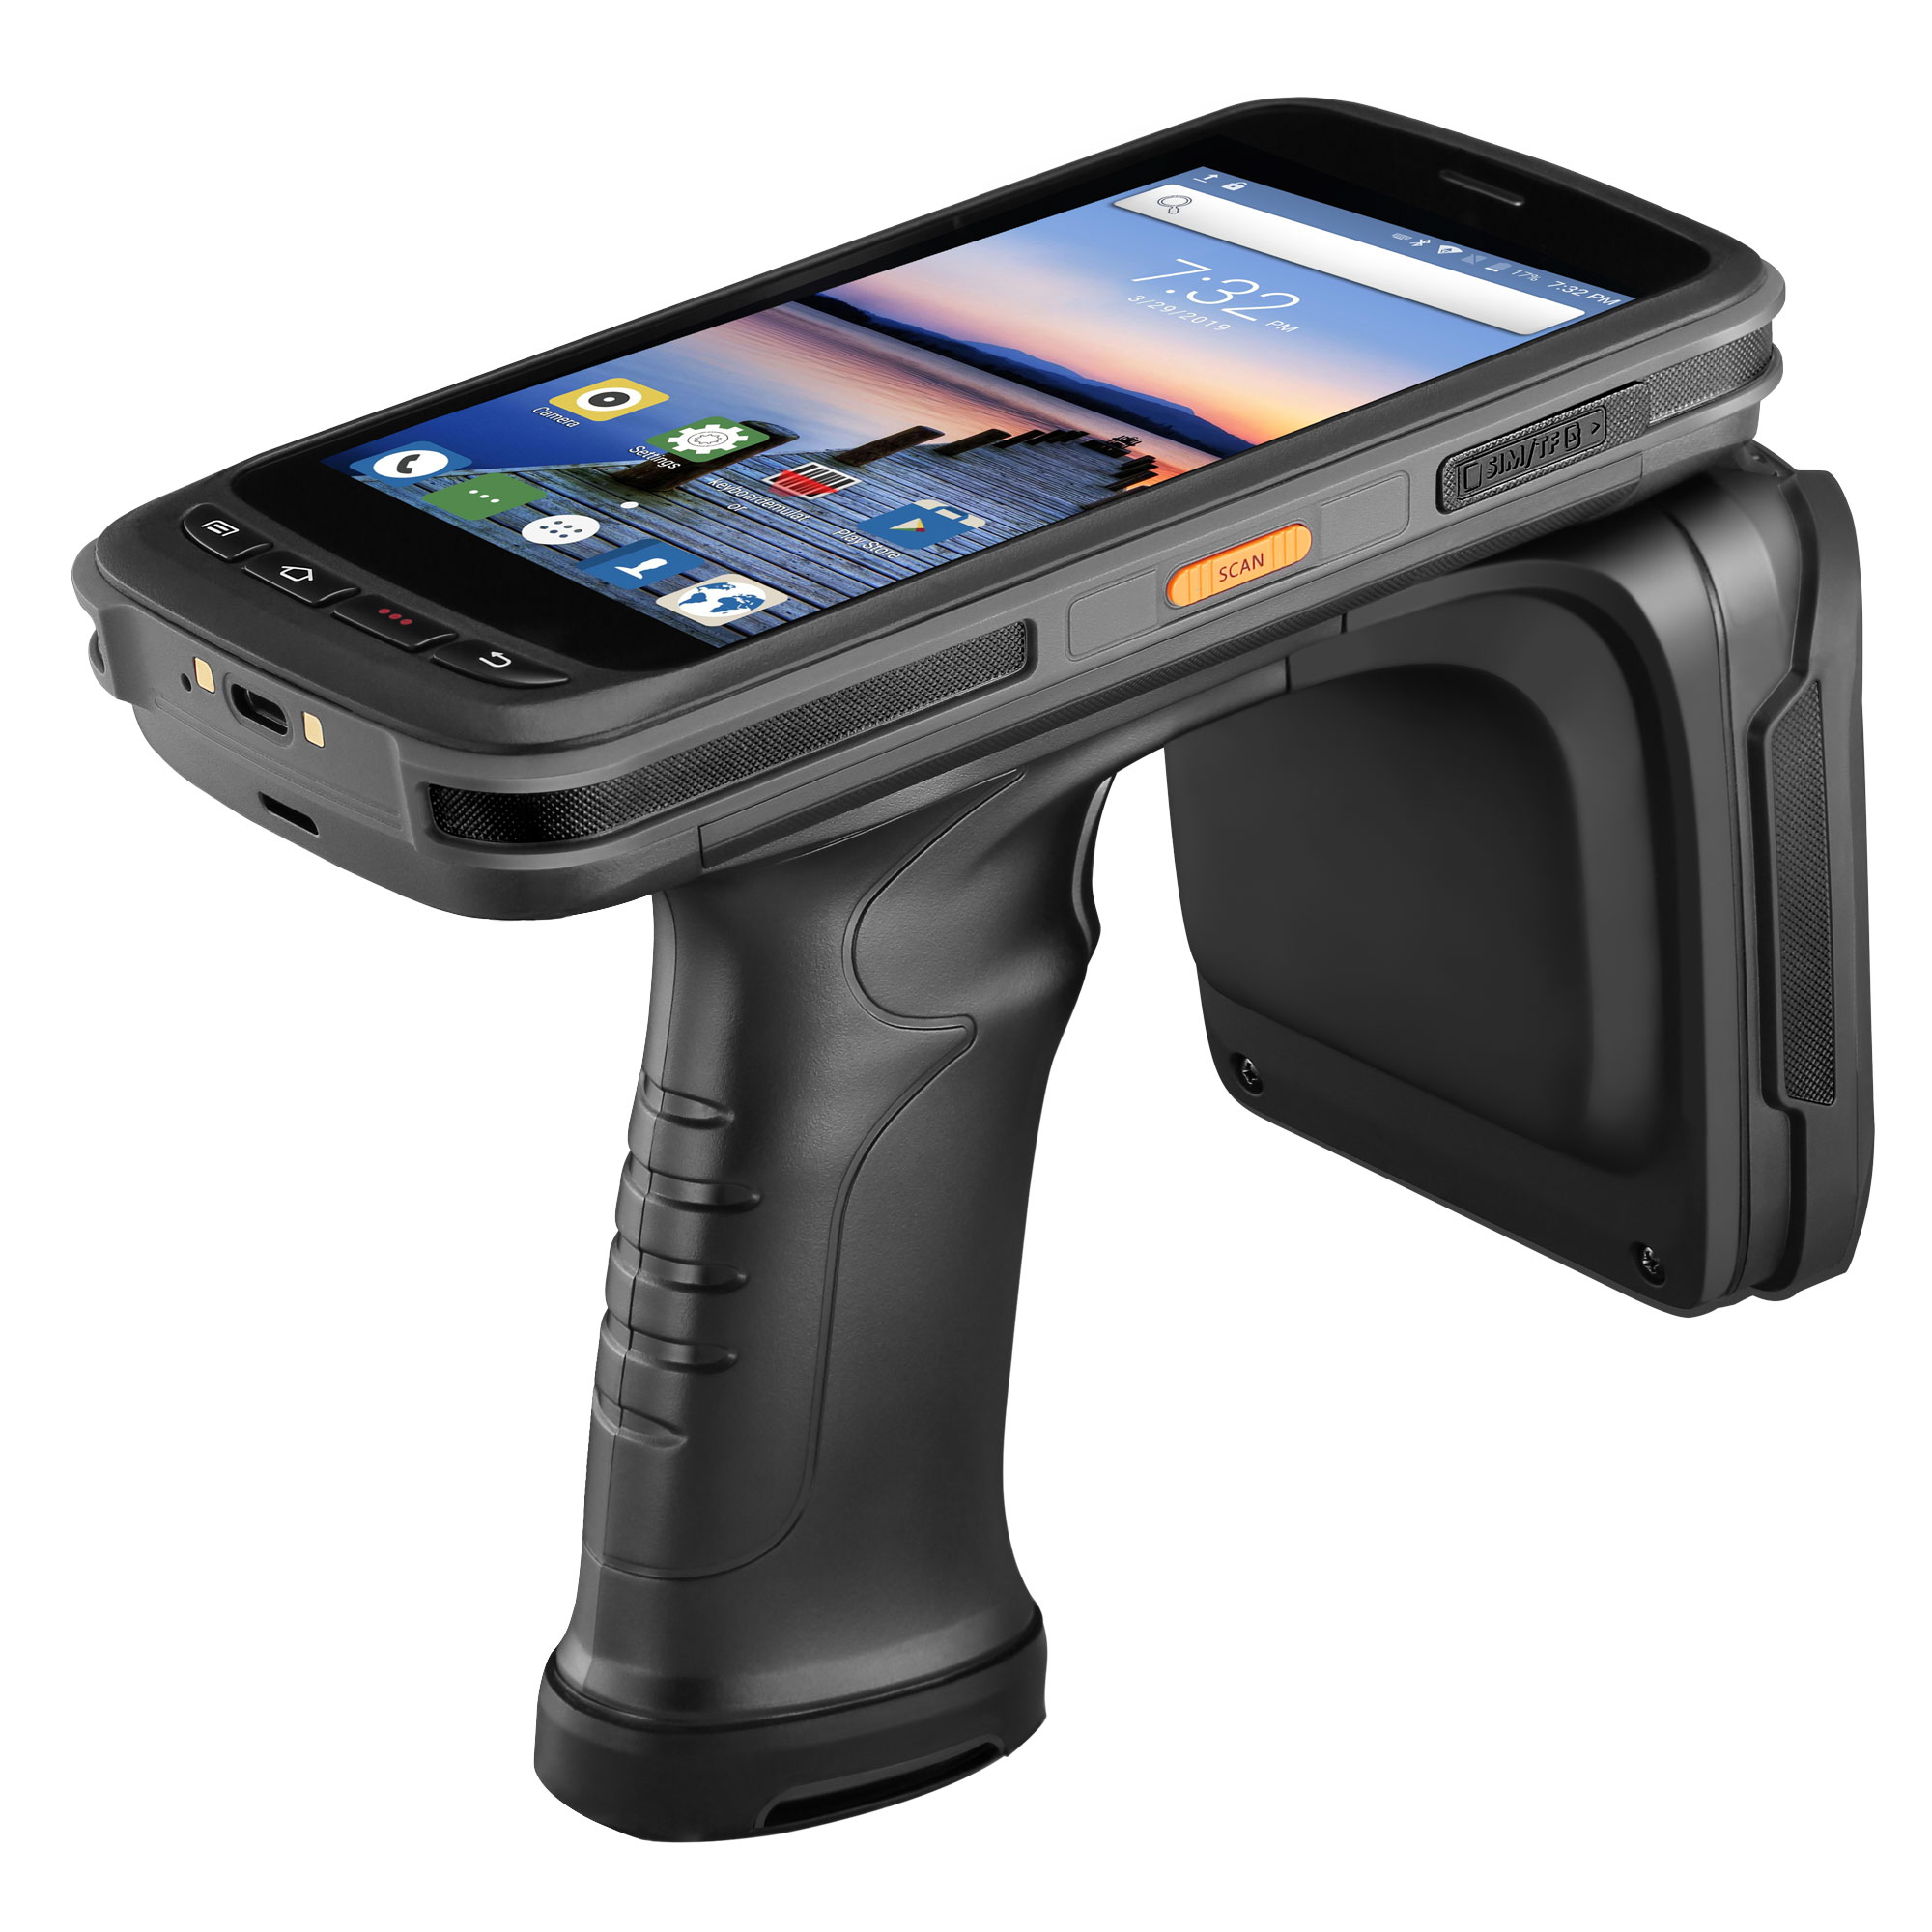 US $416 55 15% OFF|IssyzonePOS Rugged PDA Handheld Android POS Terminal  Zebra barcode Scanner 2D NFC 4G WiFi data collector UHF RFID Reader-in